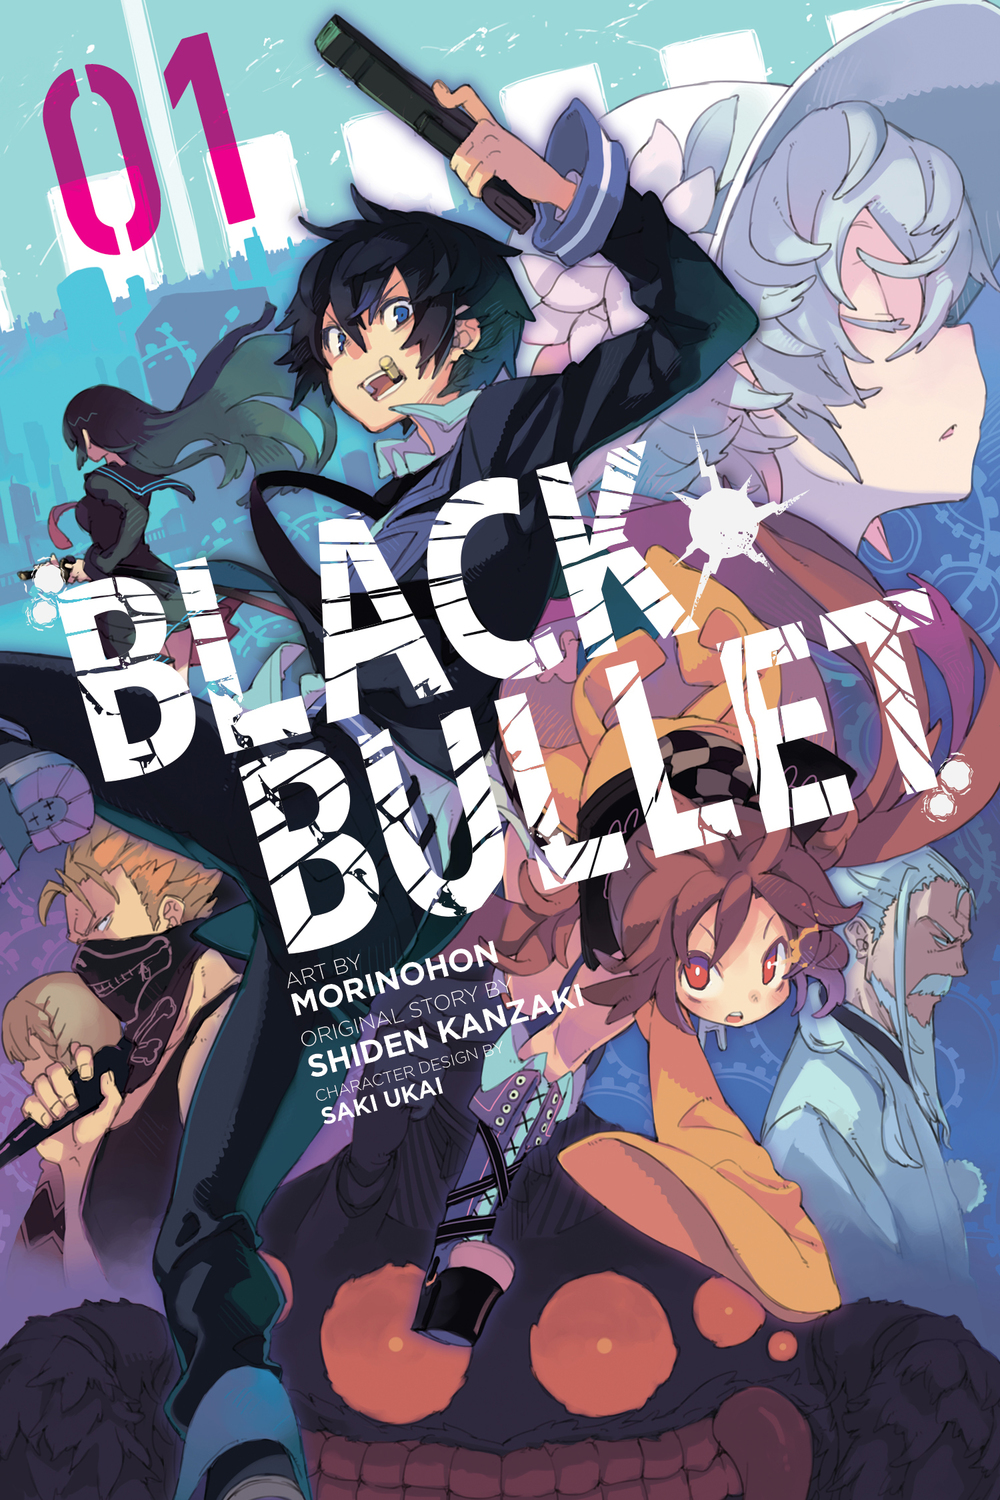 BLACK BULLET by Morinohon (art), Shiden Kanzaki (story), and Saki Ukai (design)